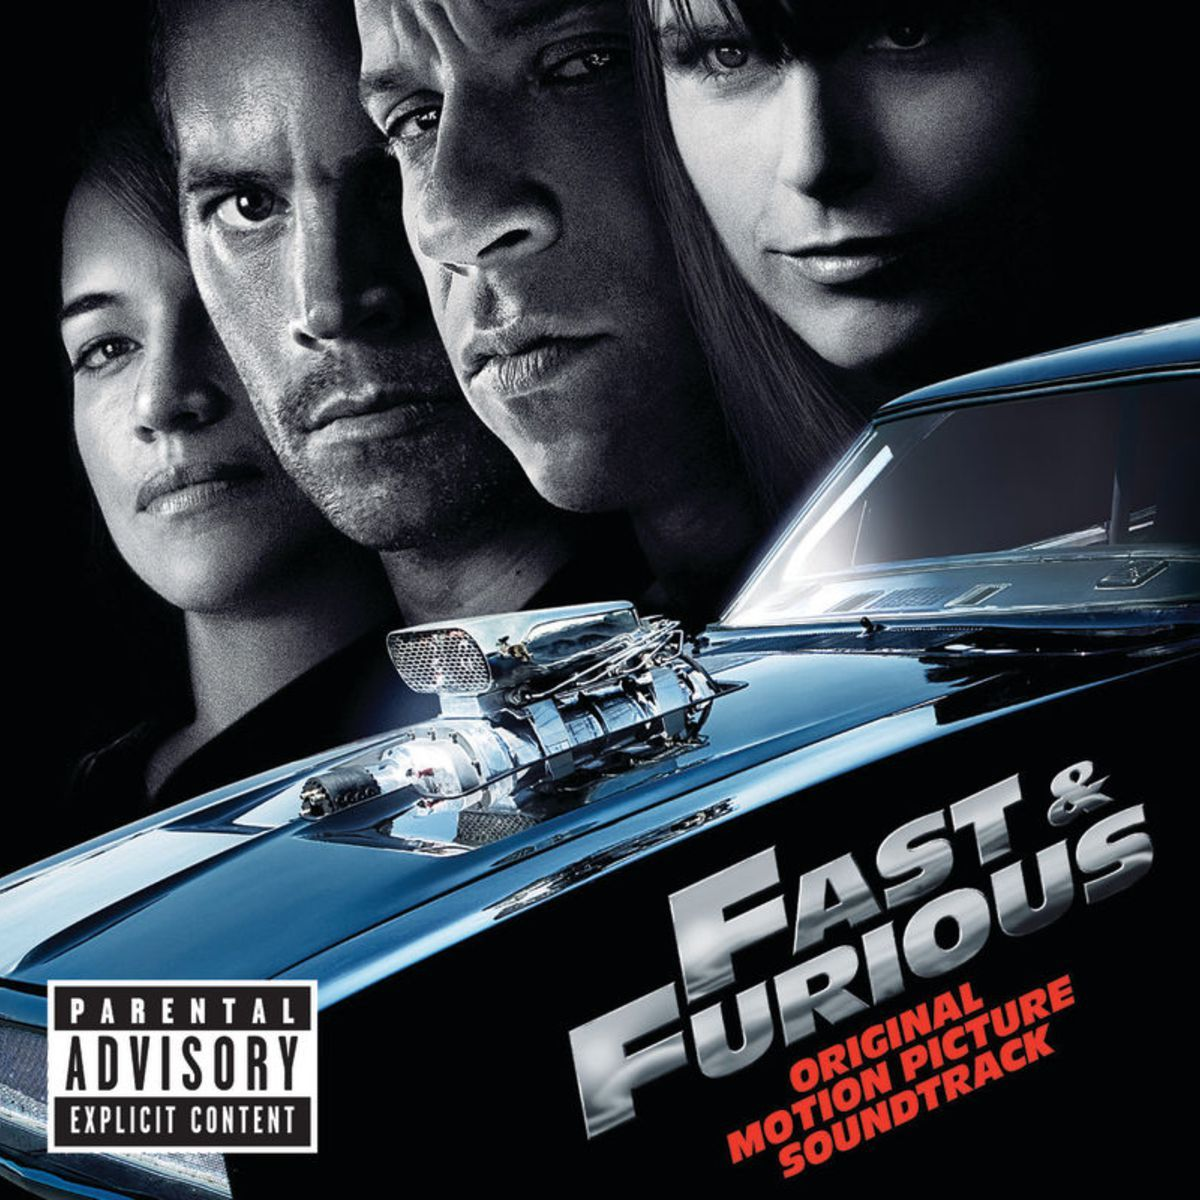 Fast and furious movie soundtrack